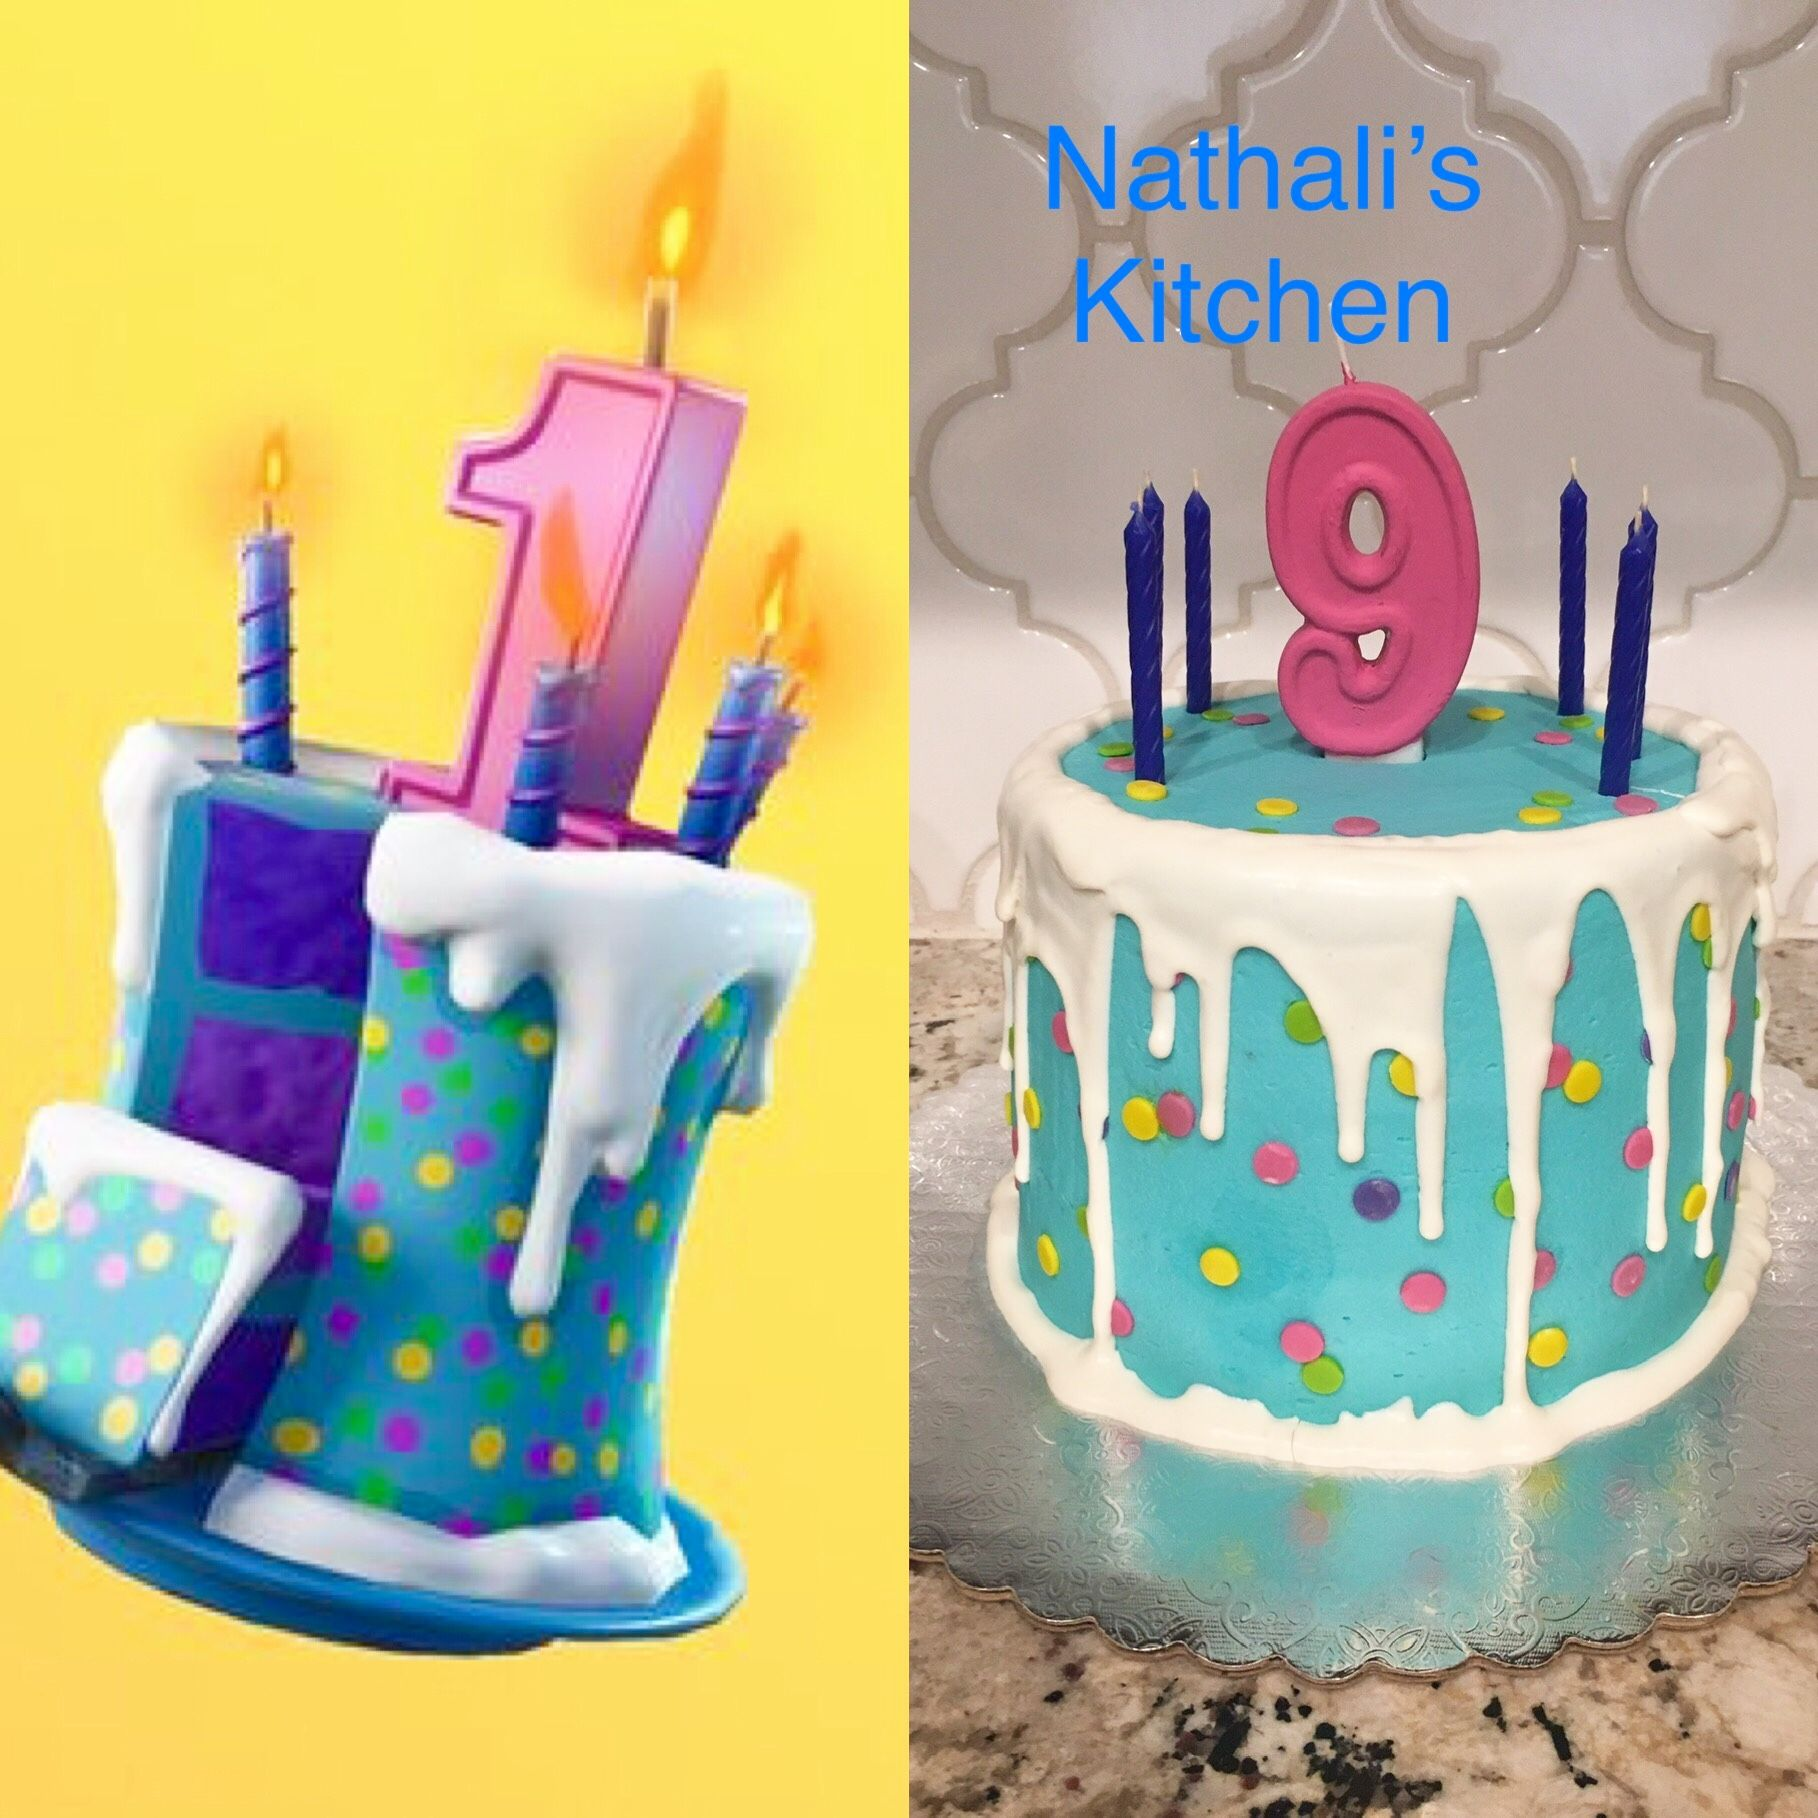 Fortnite cake from the game!! By Nathali's Kitchen Cake